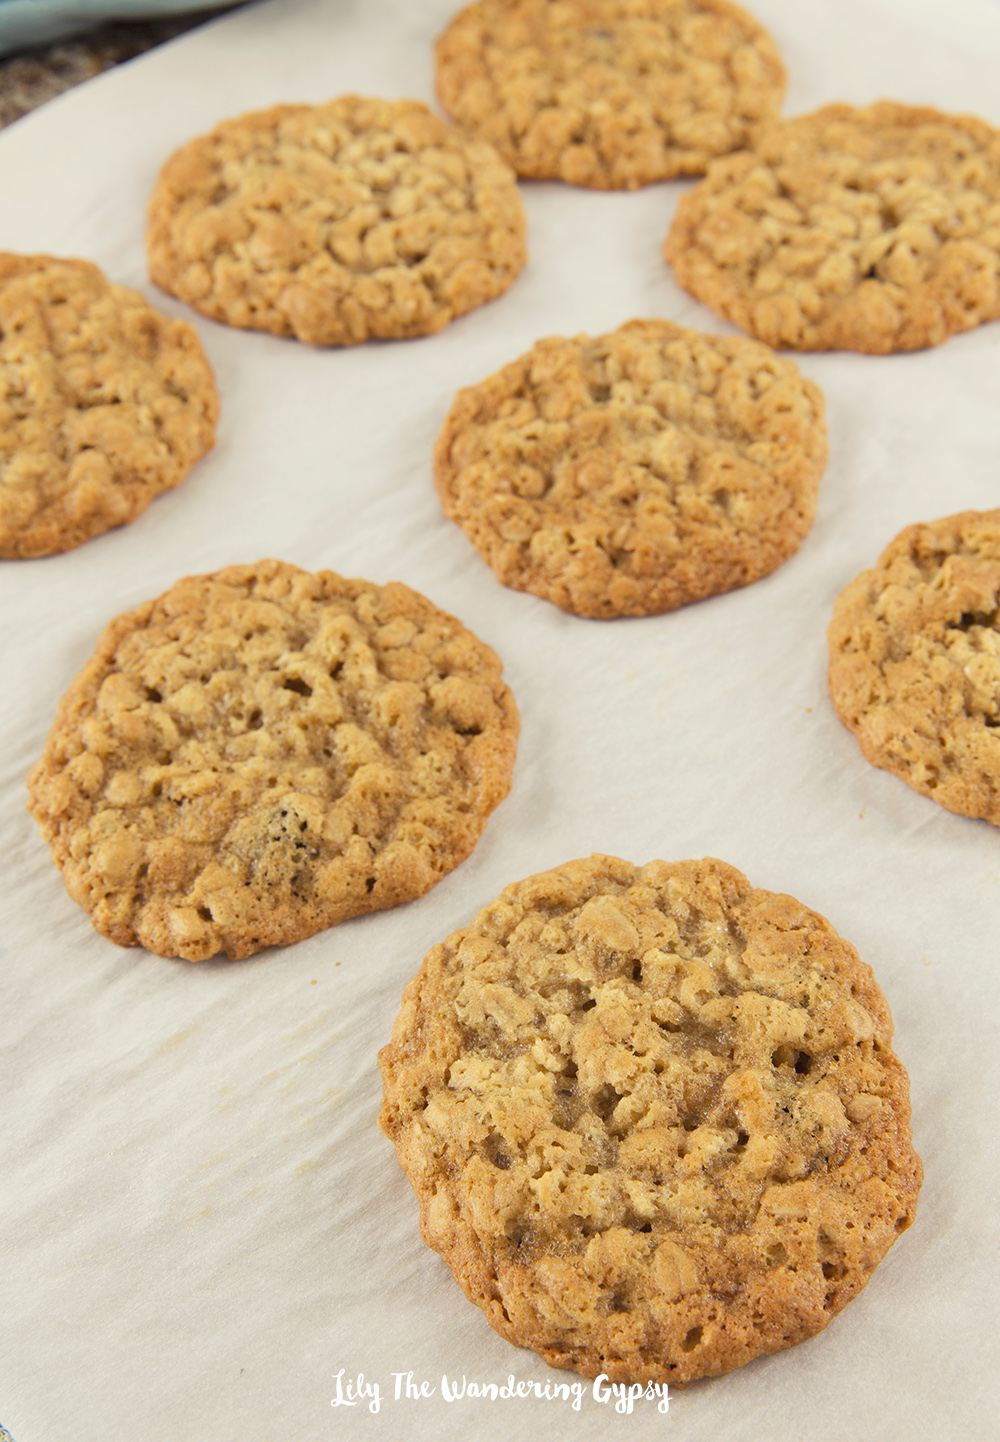 Awesome Oatmeal Cookies! YUM!